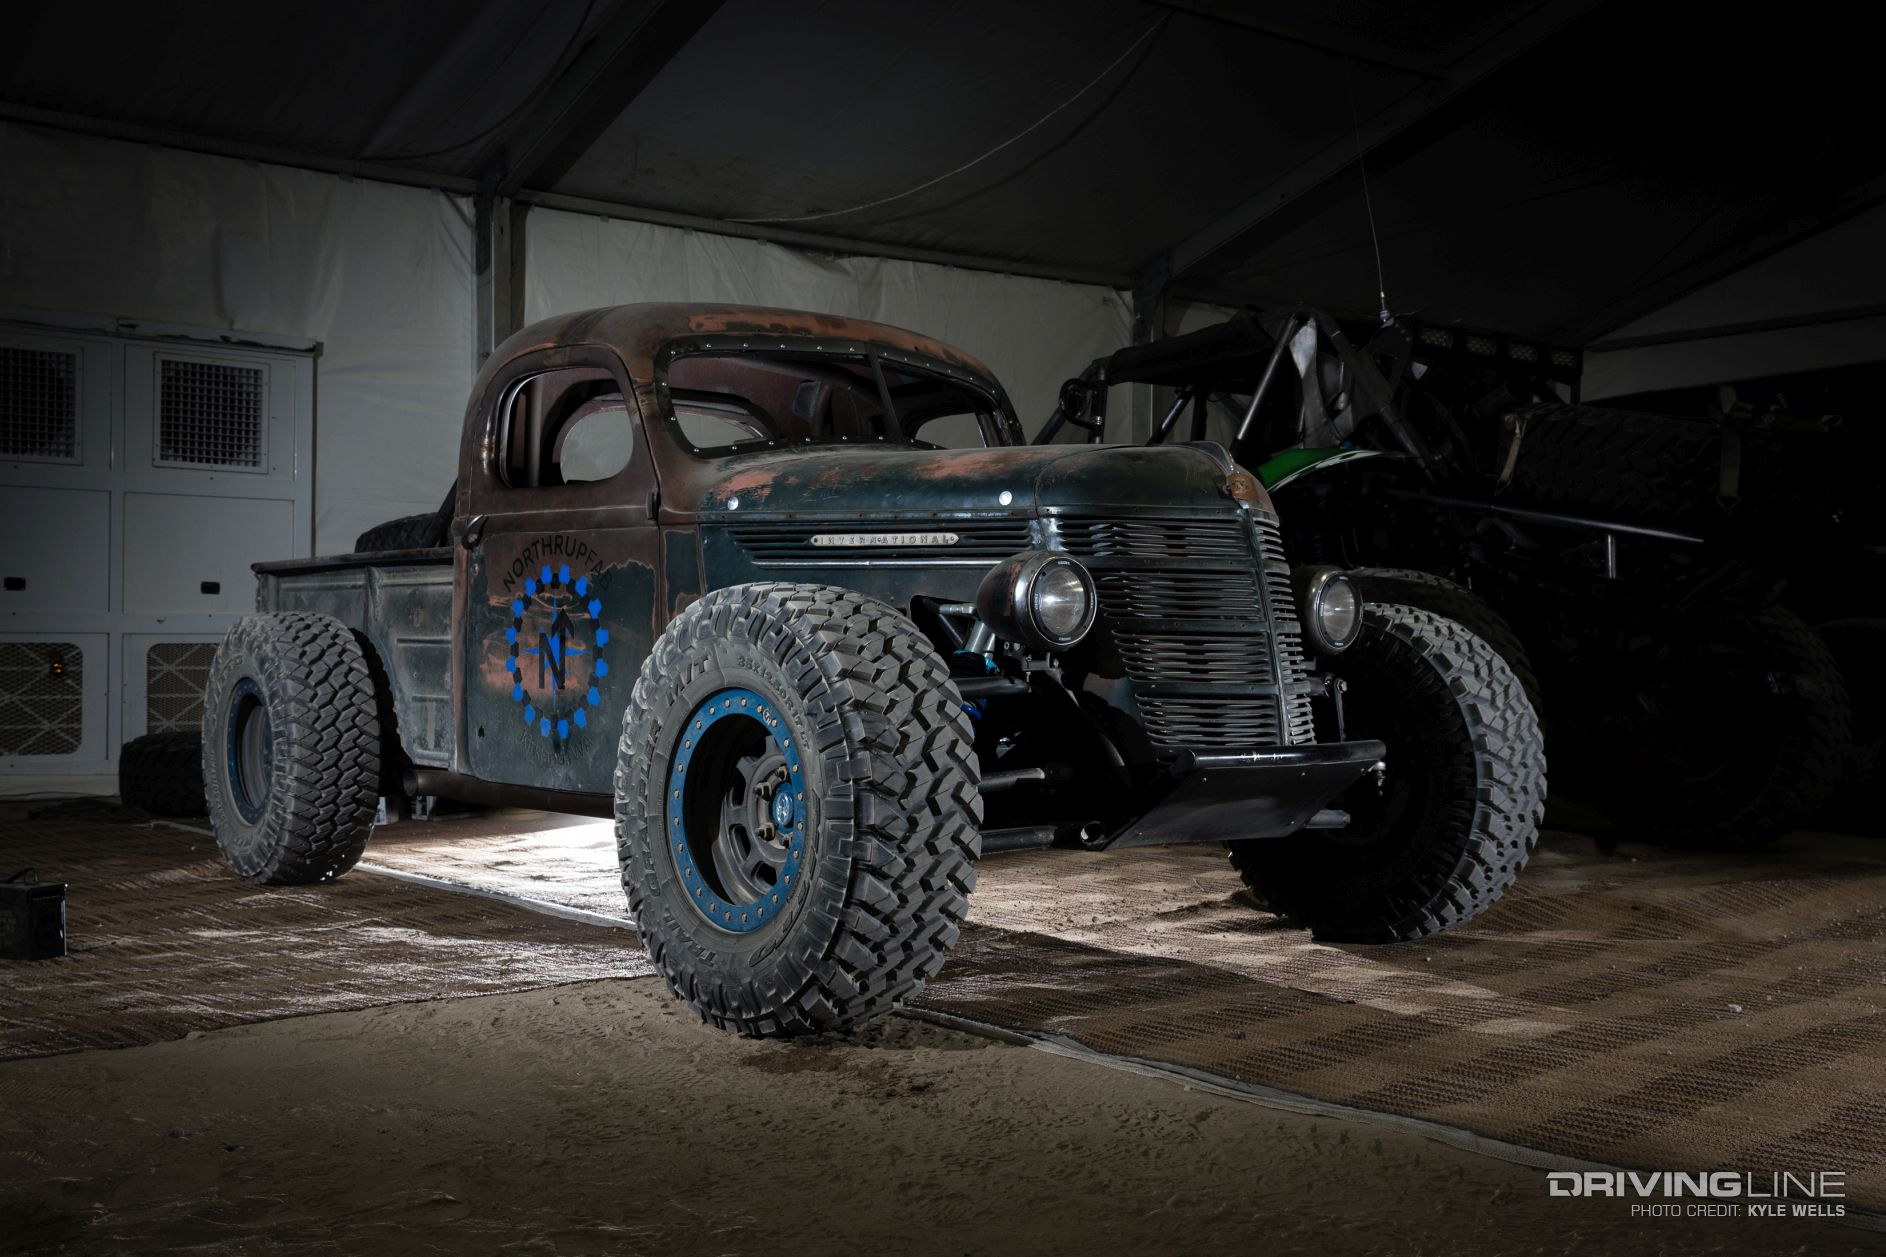 Trophy Rat A Hot Rod Pickup With Real OffRoad Chops